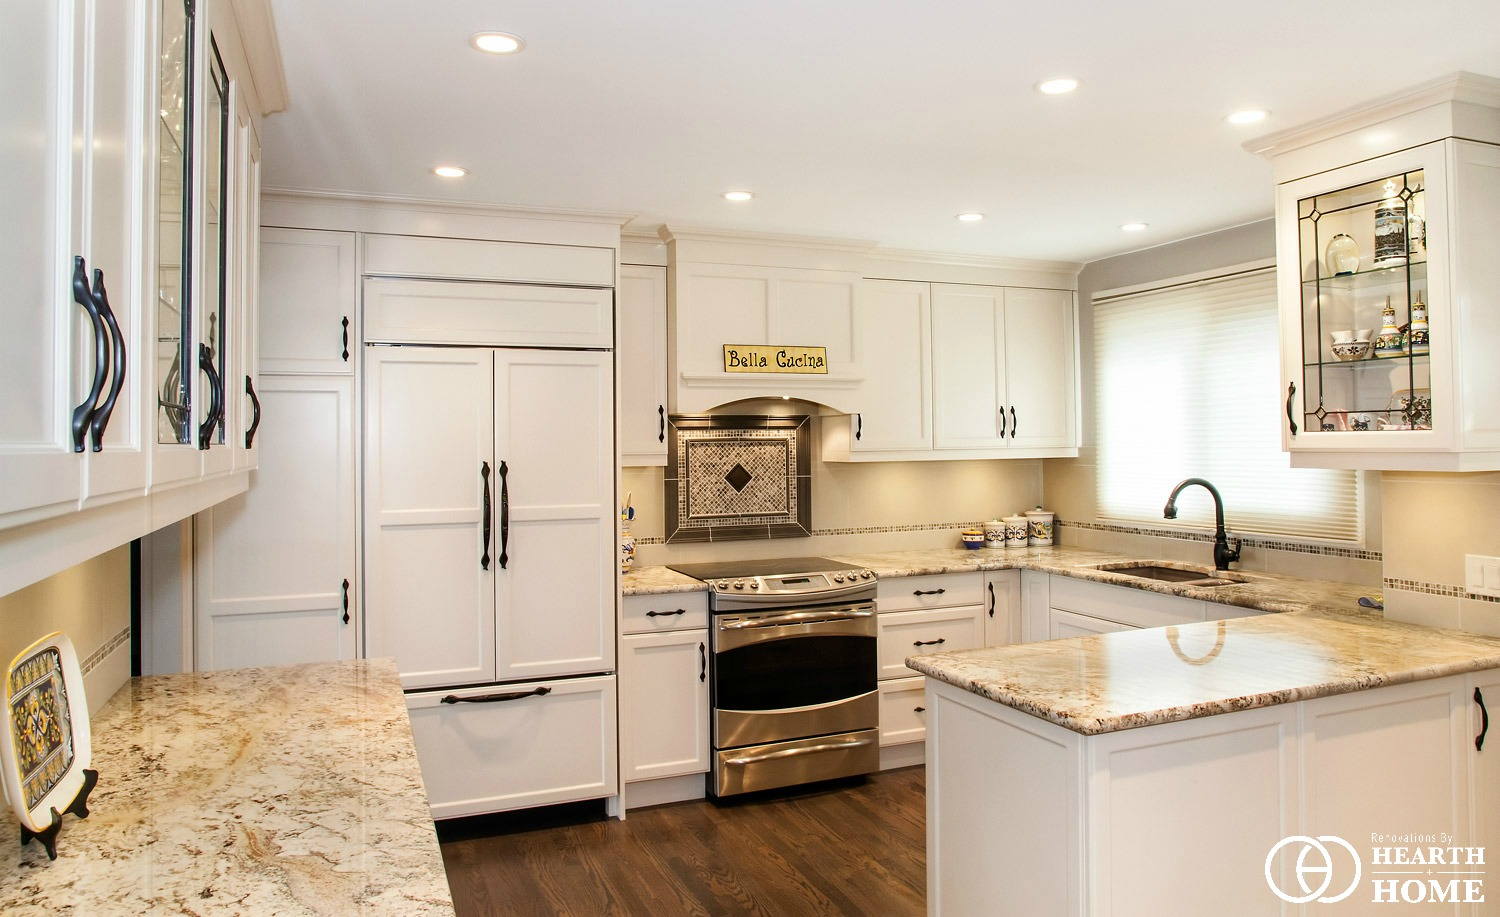 La Cucina Kitchen Gallery Kitchens Gallery Hearth Home Renovations